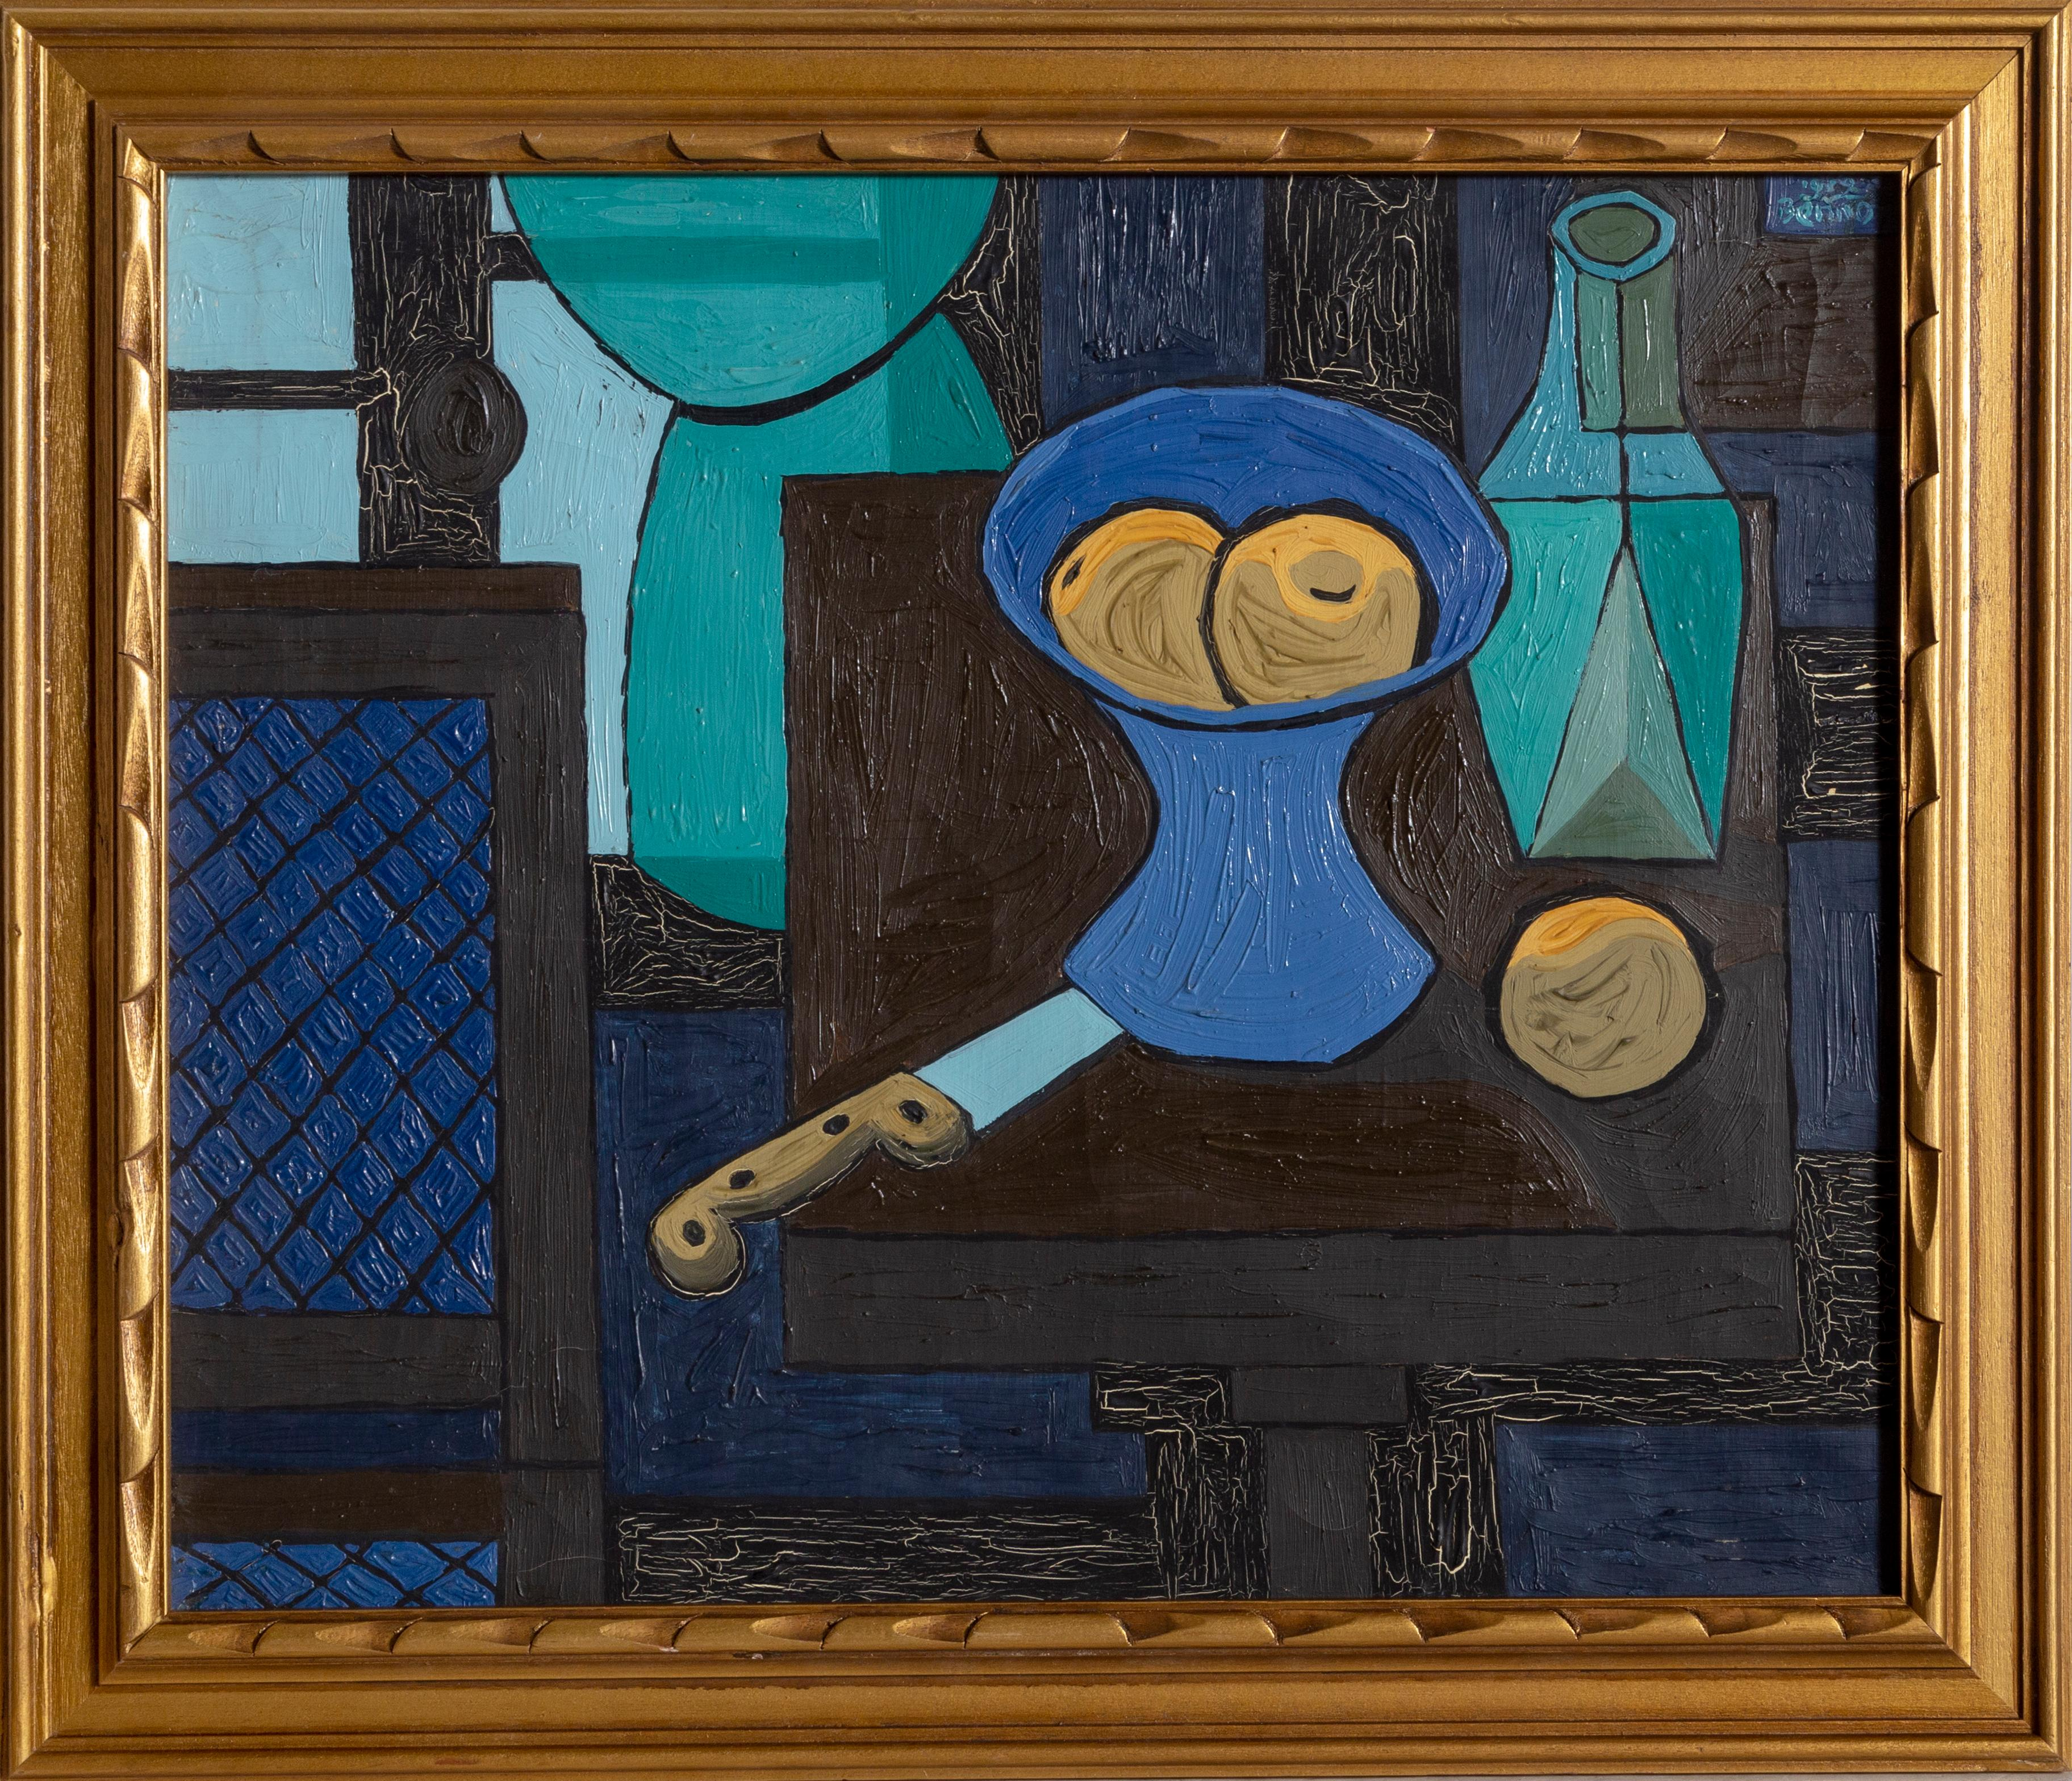 Still Life with Fruit and Knife, Modern Cubist Painting by Benjamin Benno 1939